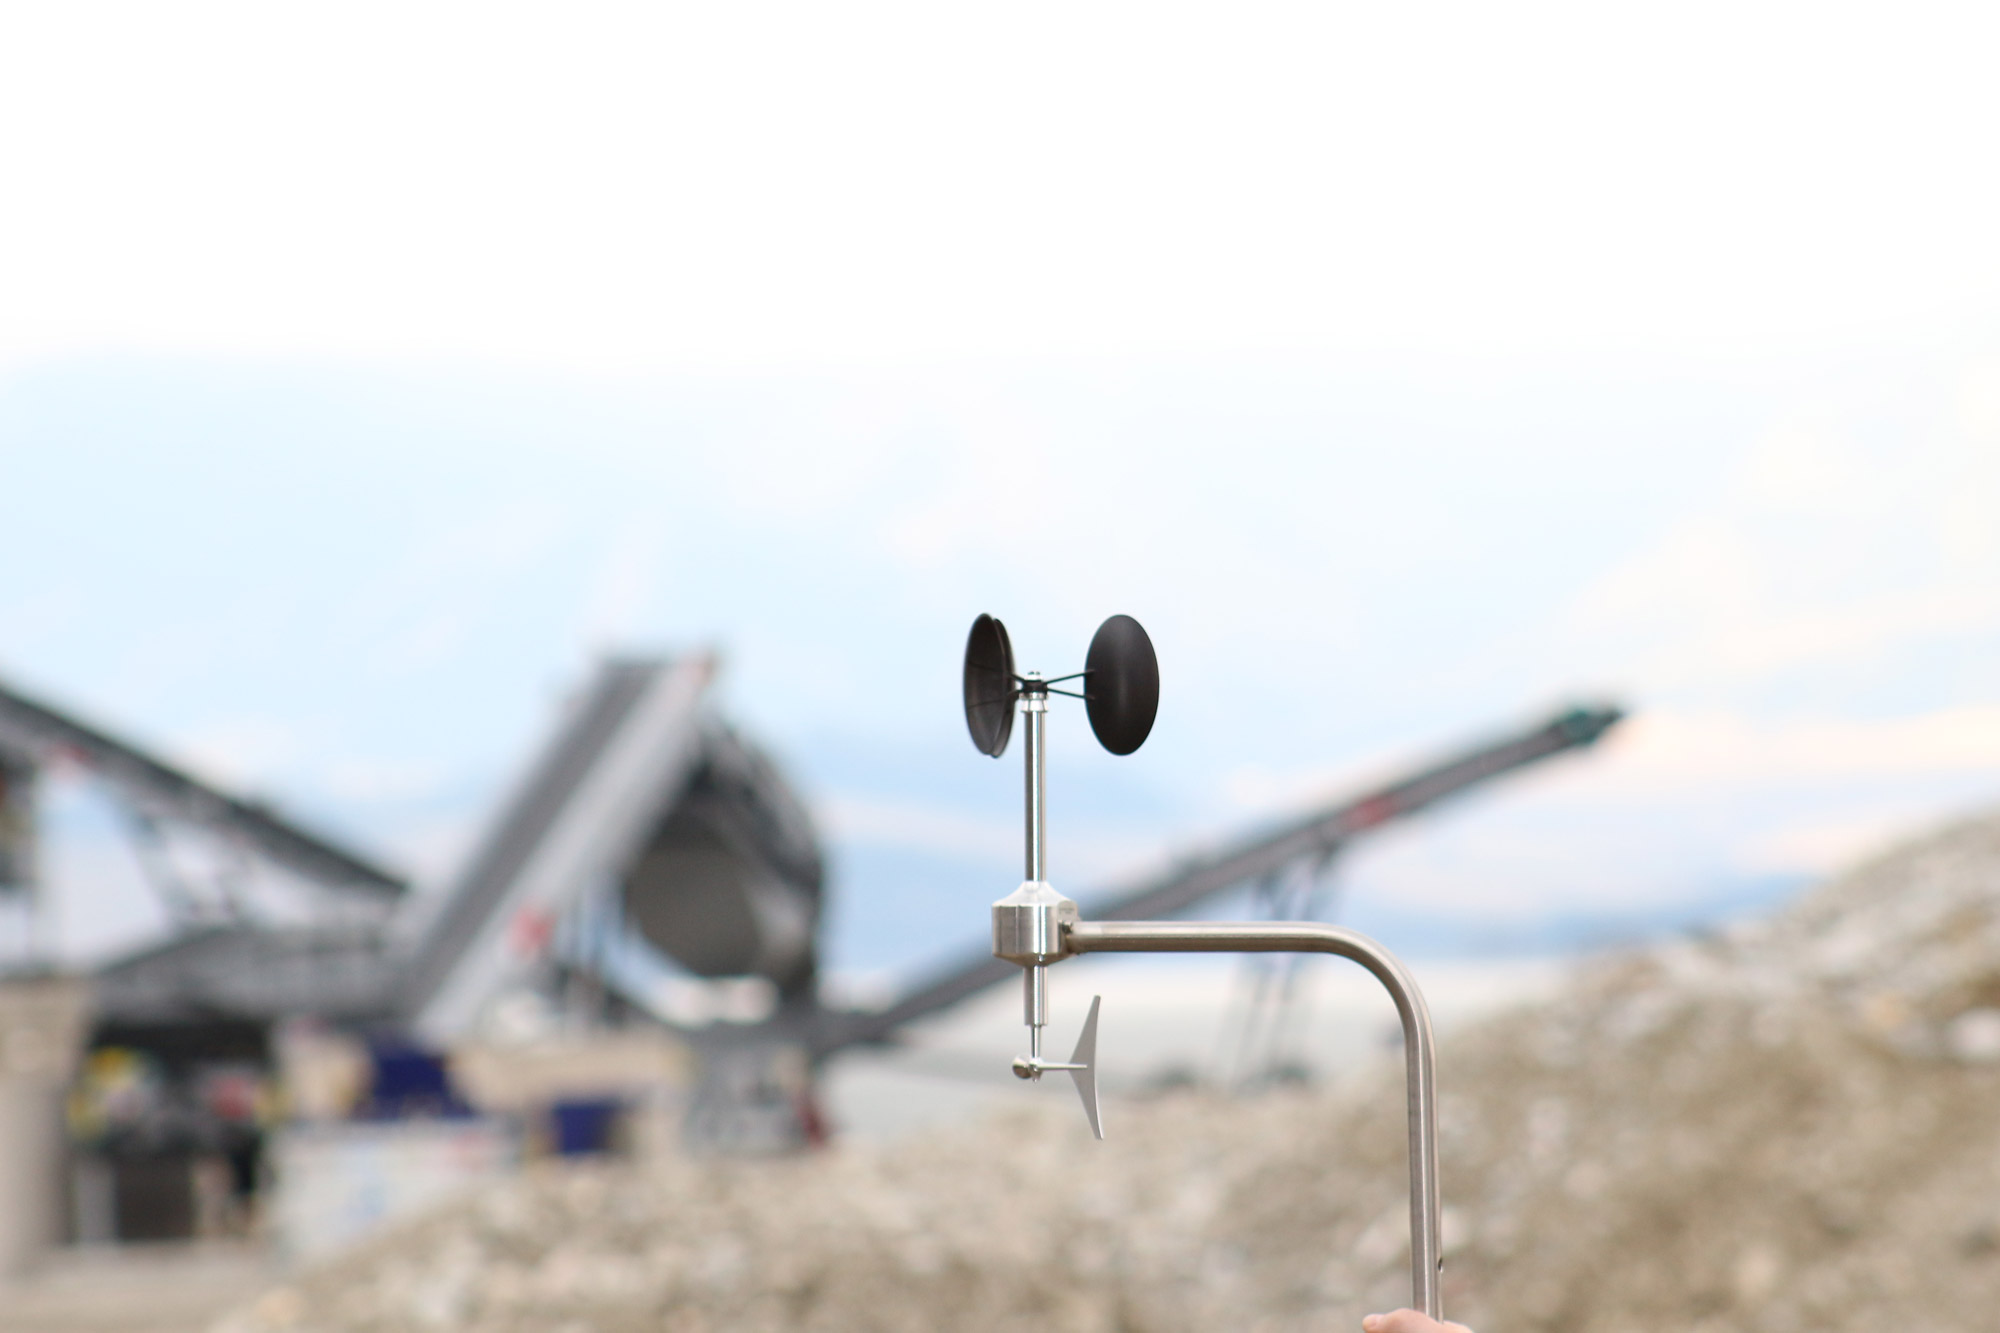 Anemometer in an industrial plant